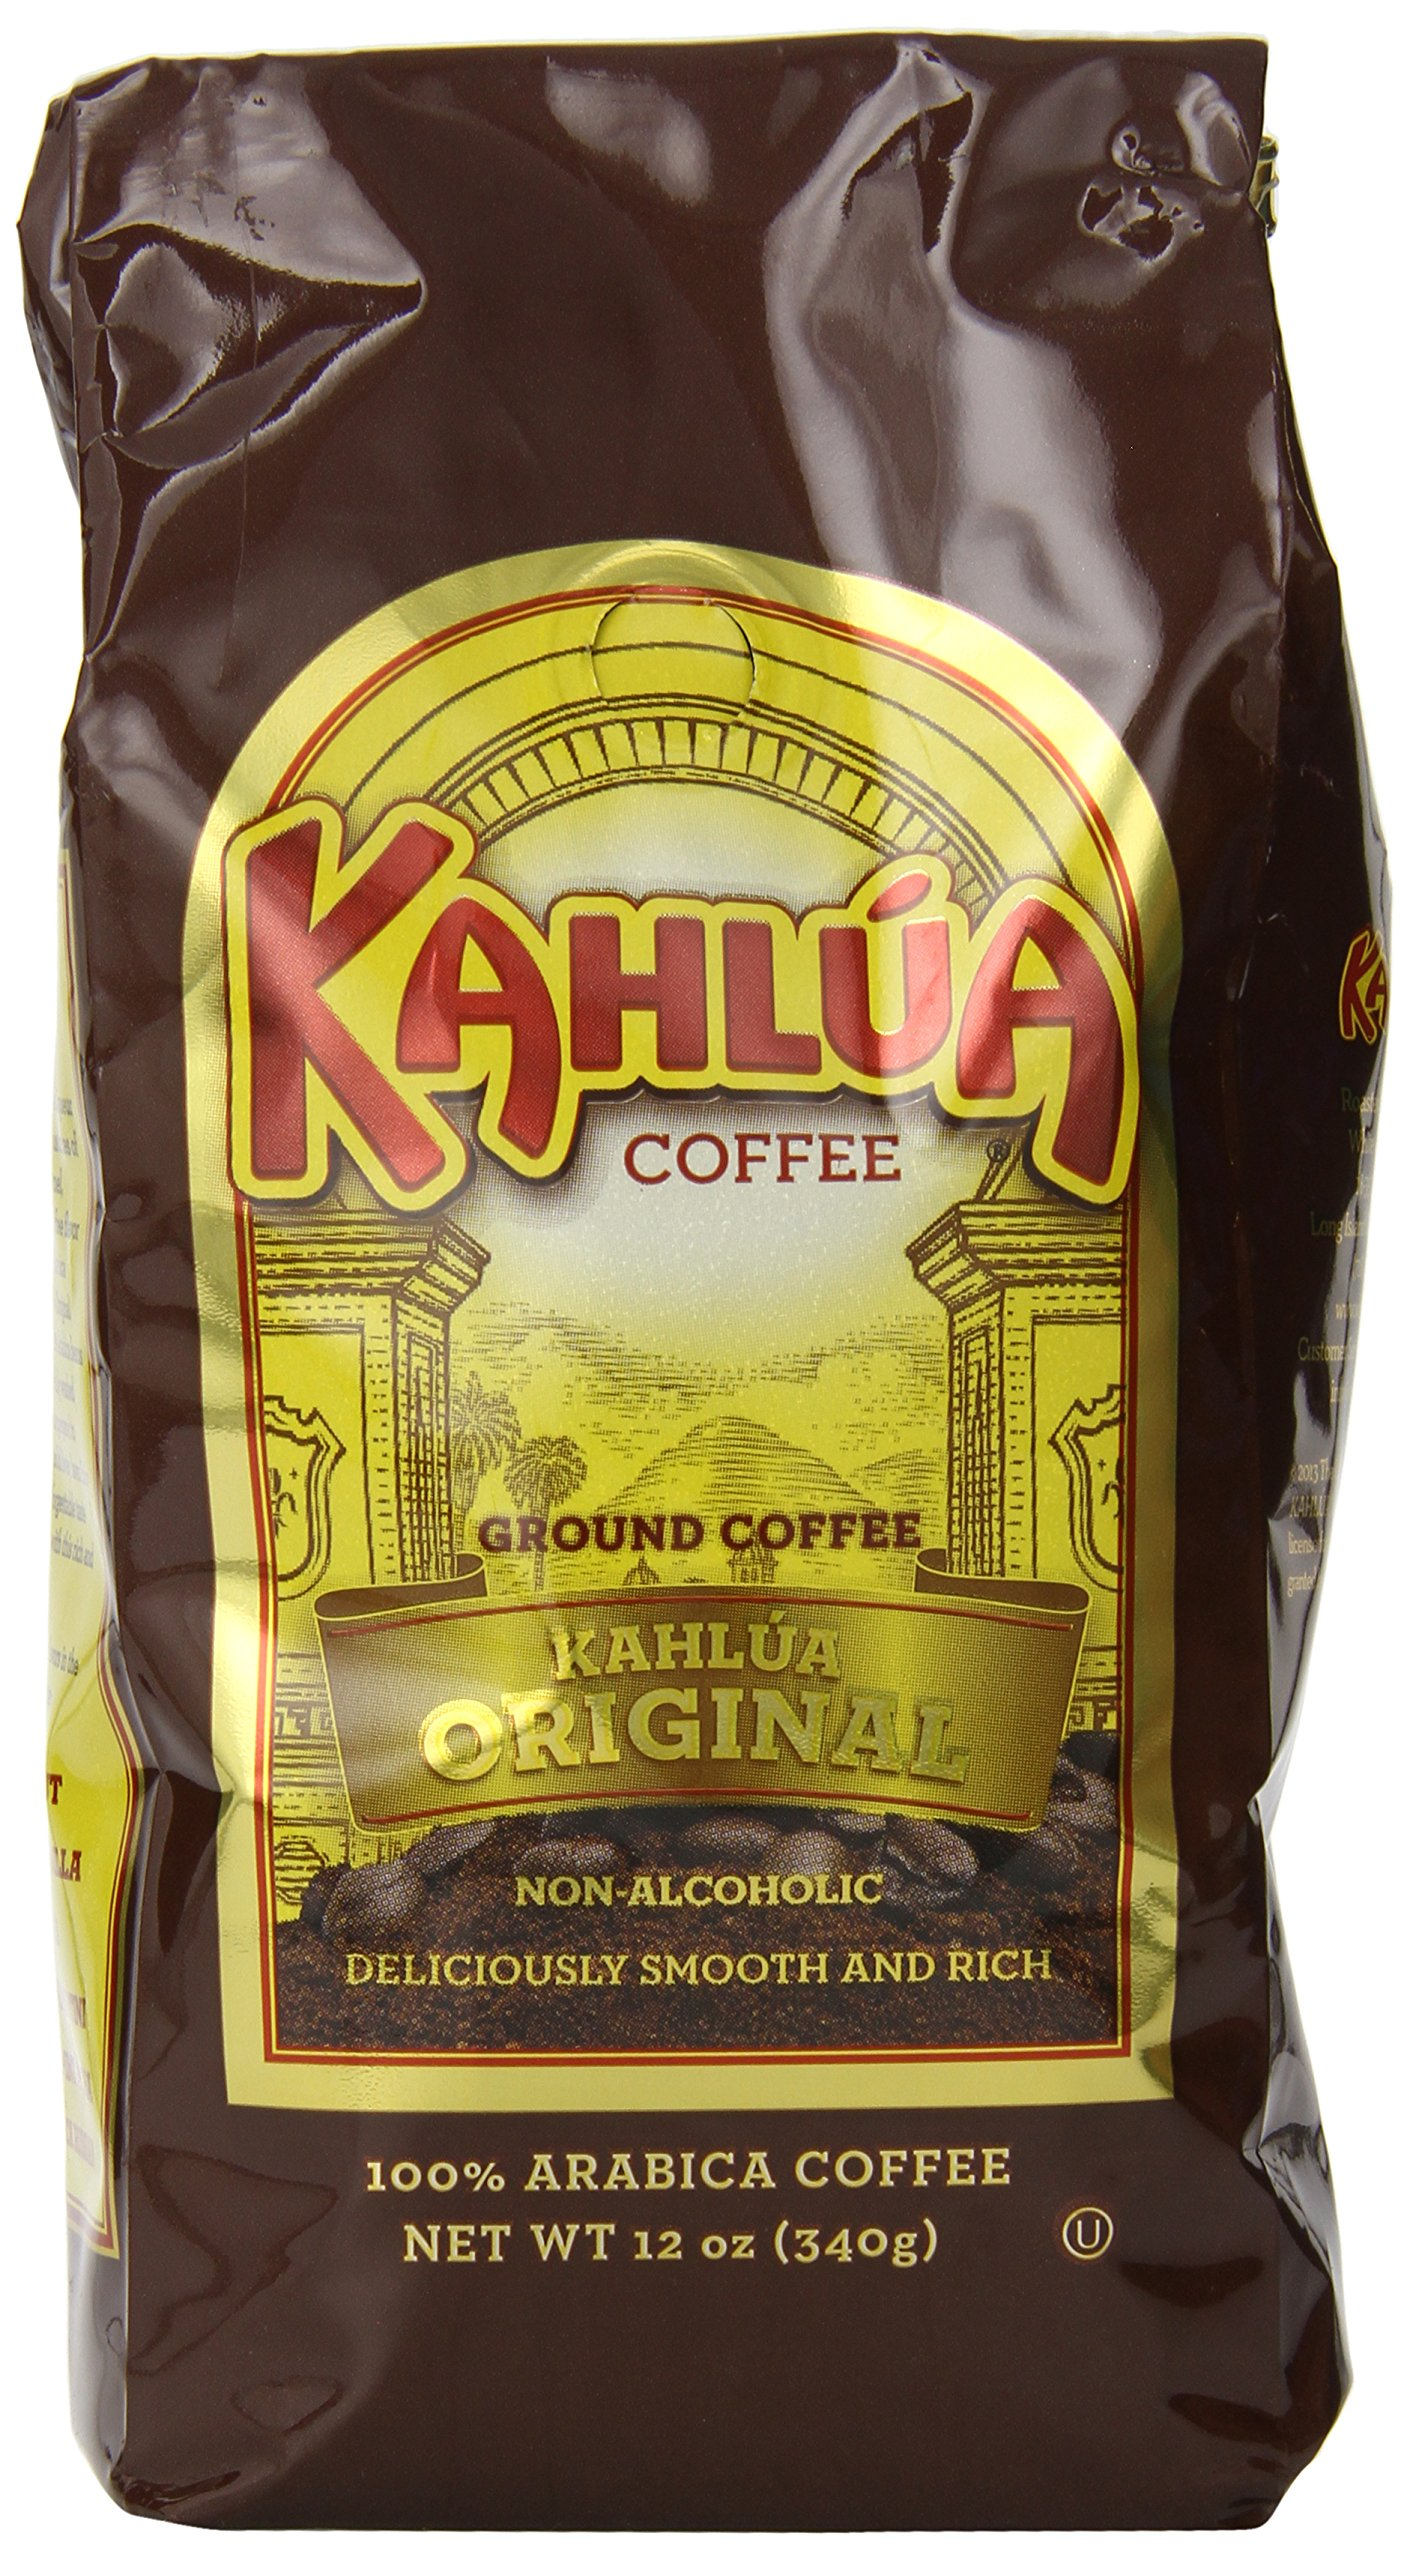 Kahlua Gourmet Ground Coffee, Original, 12 Ounce by White House Coffee